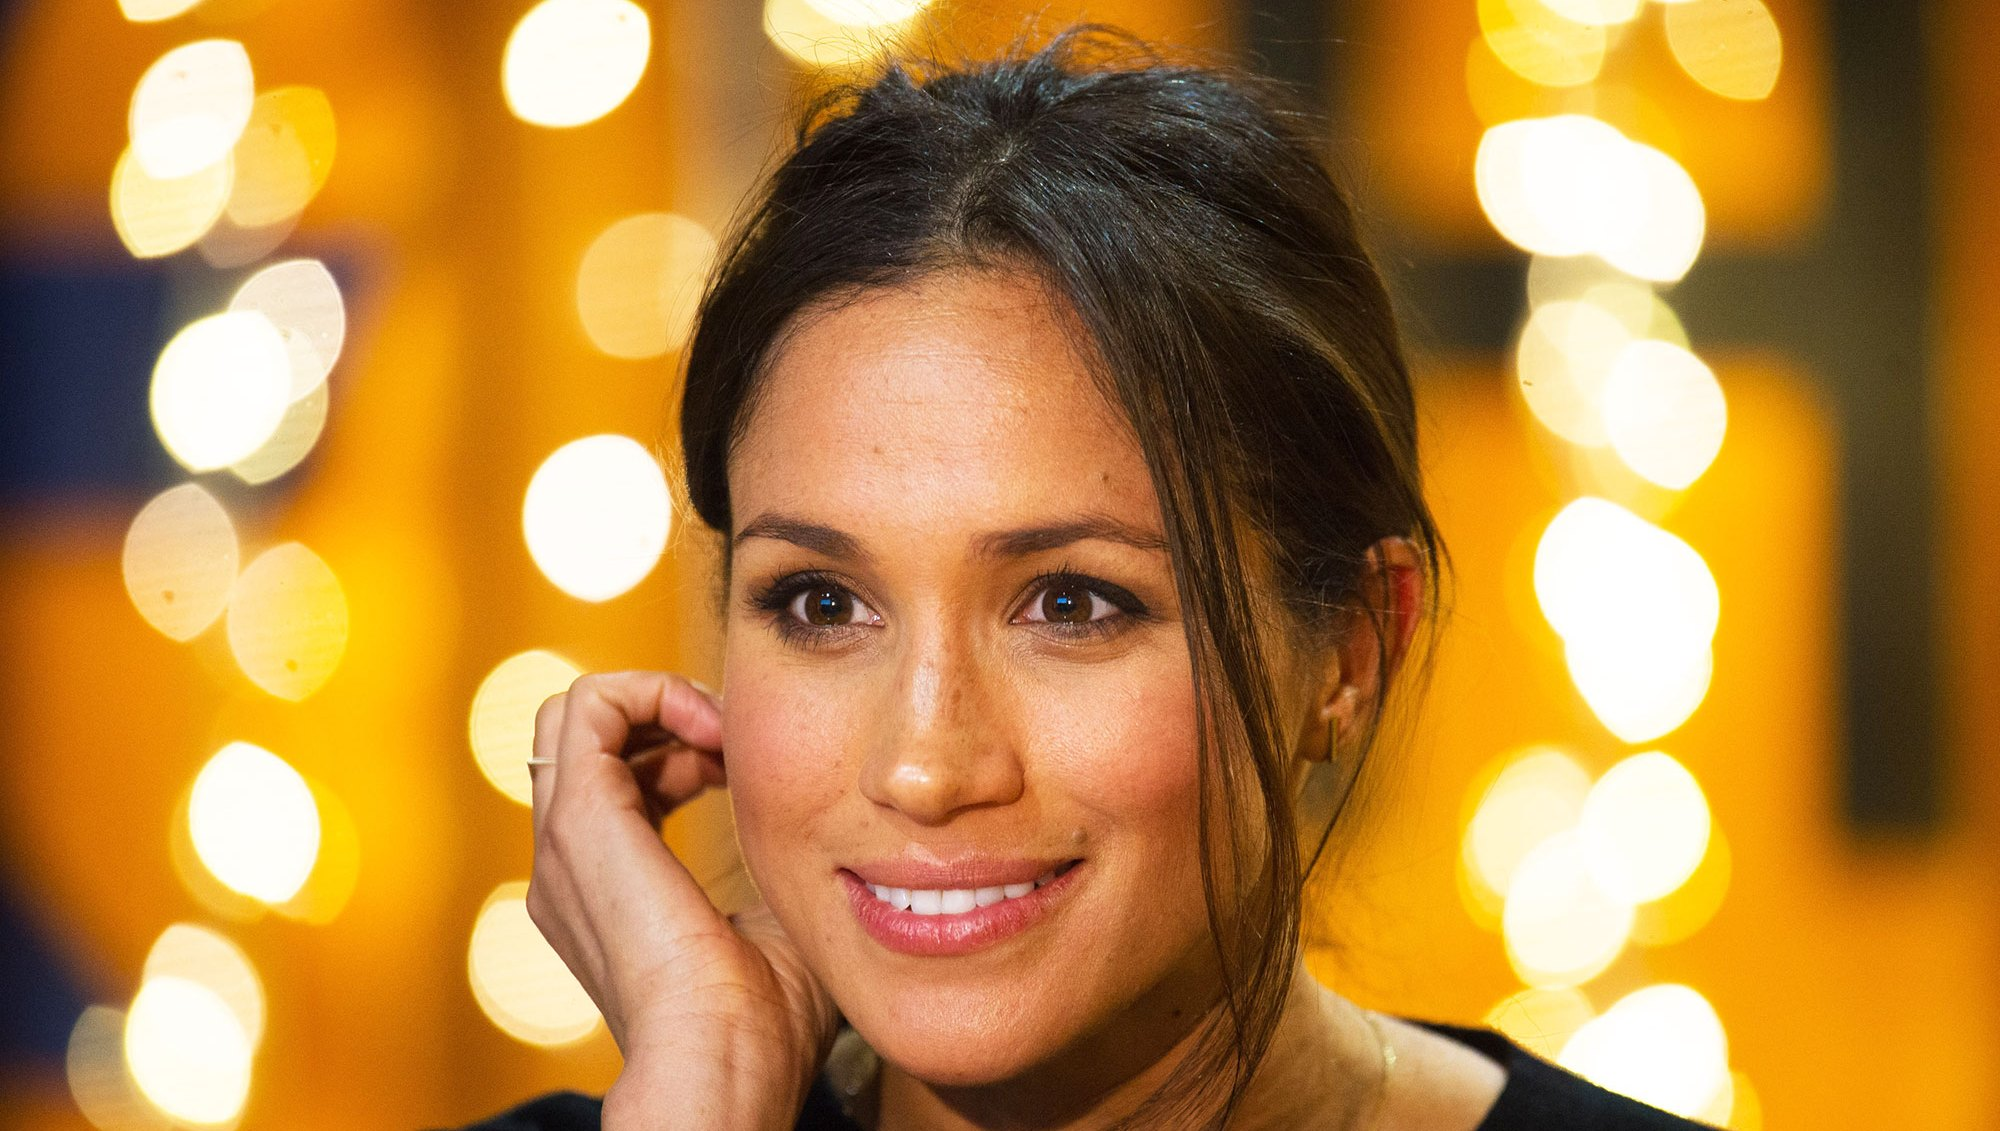 The Real Reason Meghan Markle Does Her Own Makeup